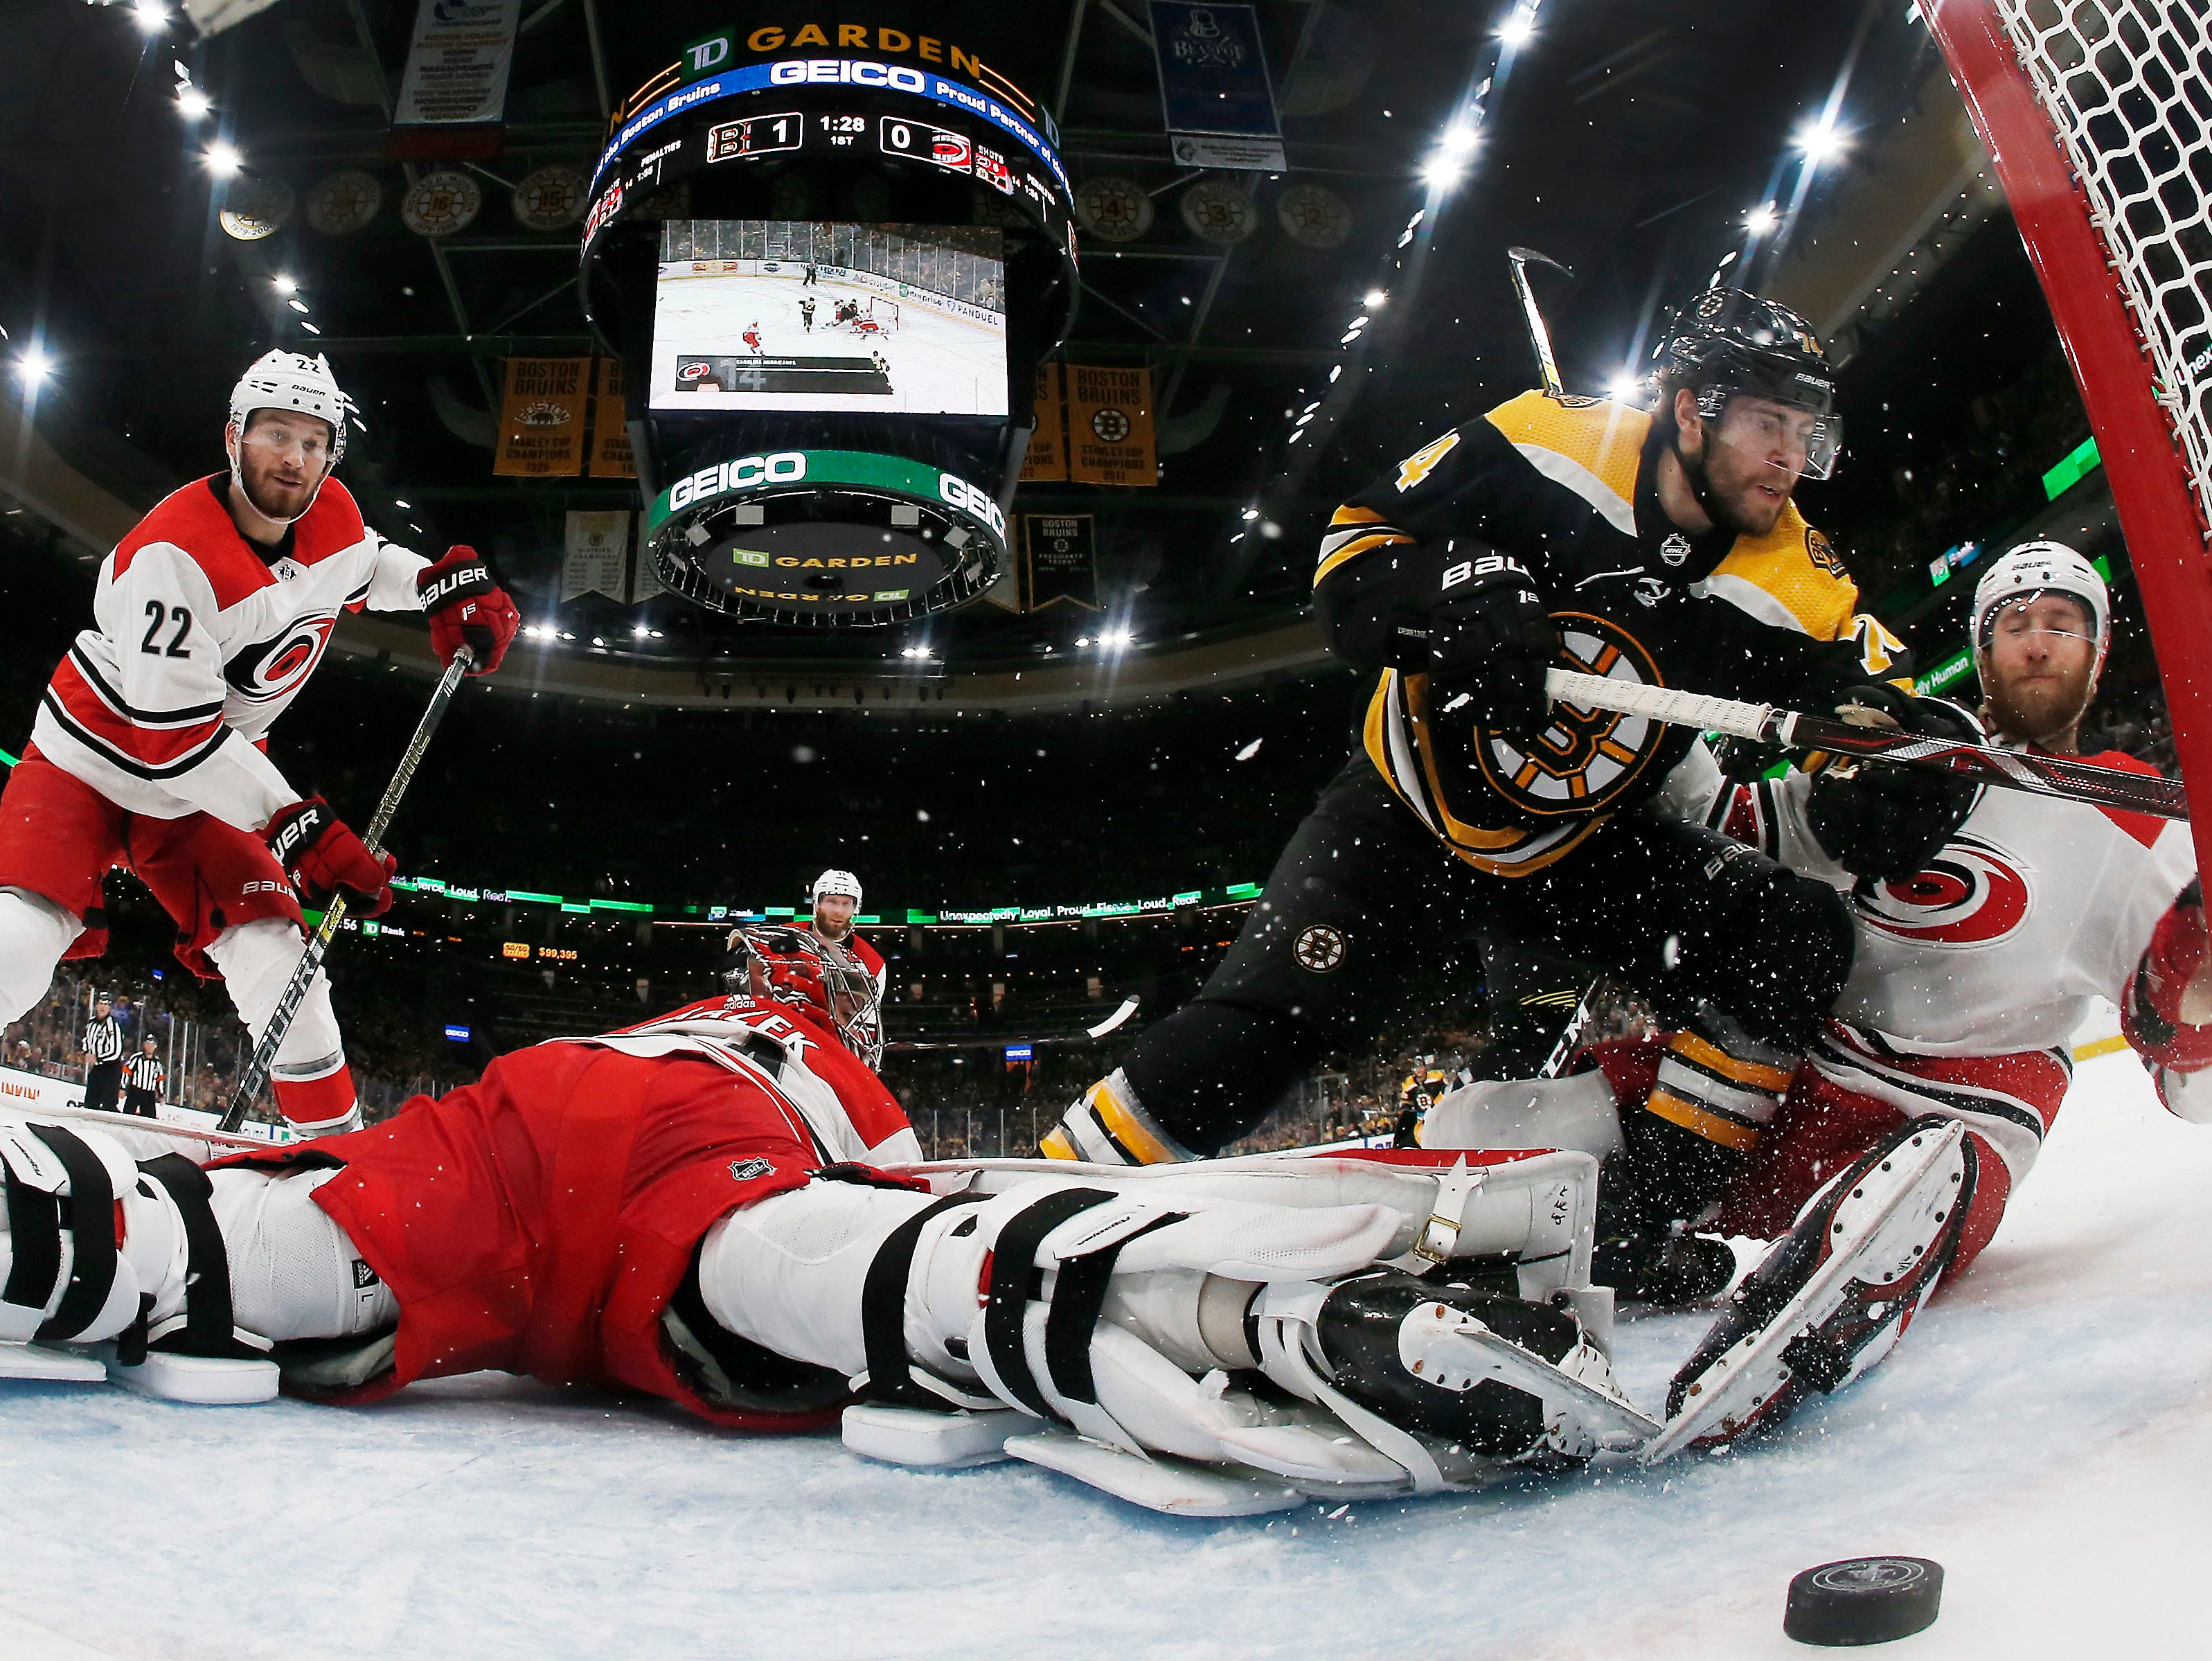 Conference finals: Boston Bruins forward Jake DeBrusk scores against the Carolina Hurricanes during the first period in Game 2.